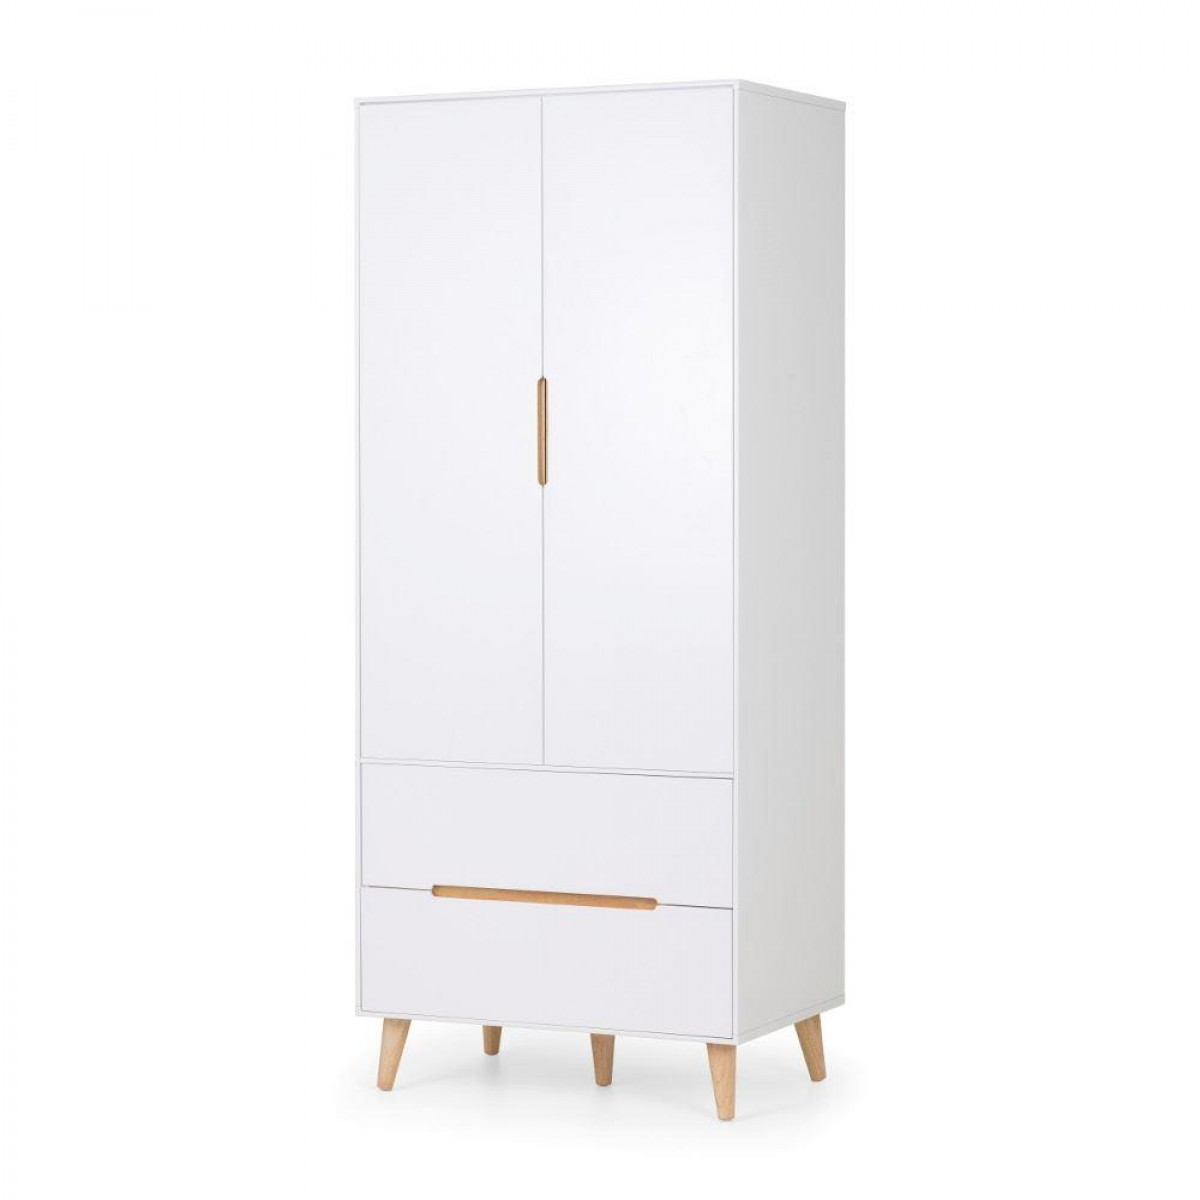 Alicia White and Oak 2 Door Wooden Combination Wardrobe